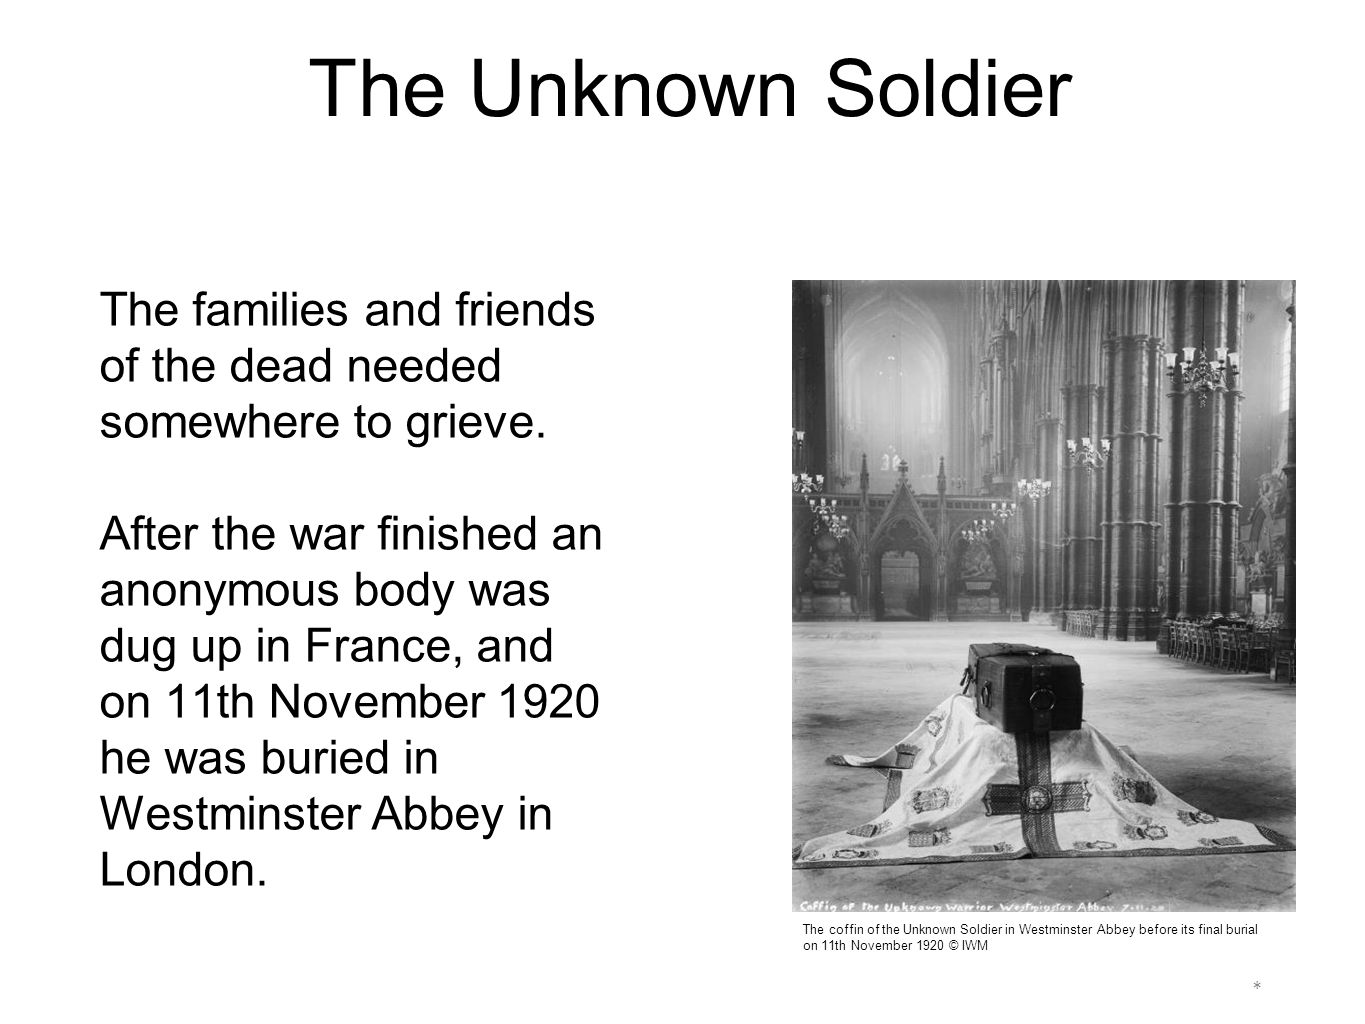 * The Unknown Soldier's grave in Westminster Abbey © Creative Commons The Unknown Soldier It deliberately says on the gravestone that the soldier is unknown, so he can represent anyone and everyone.